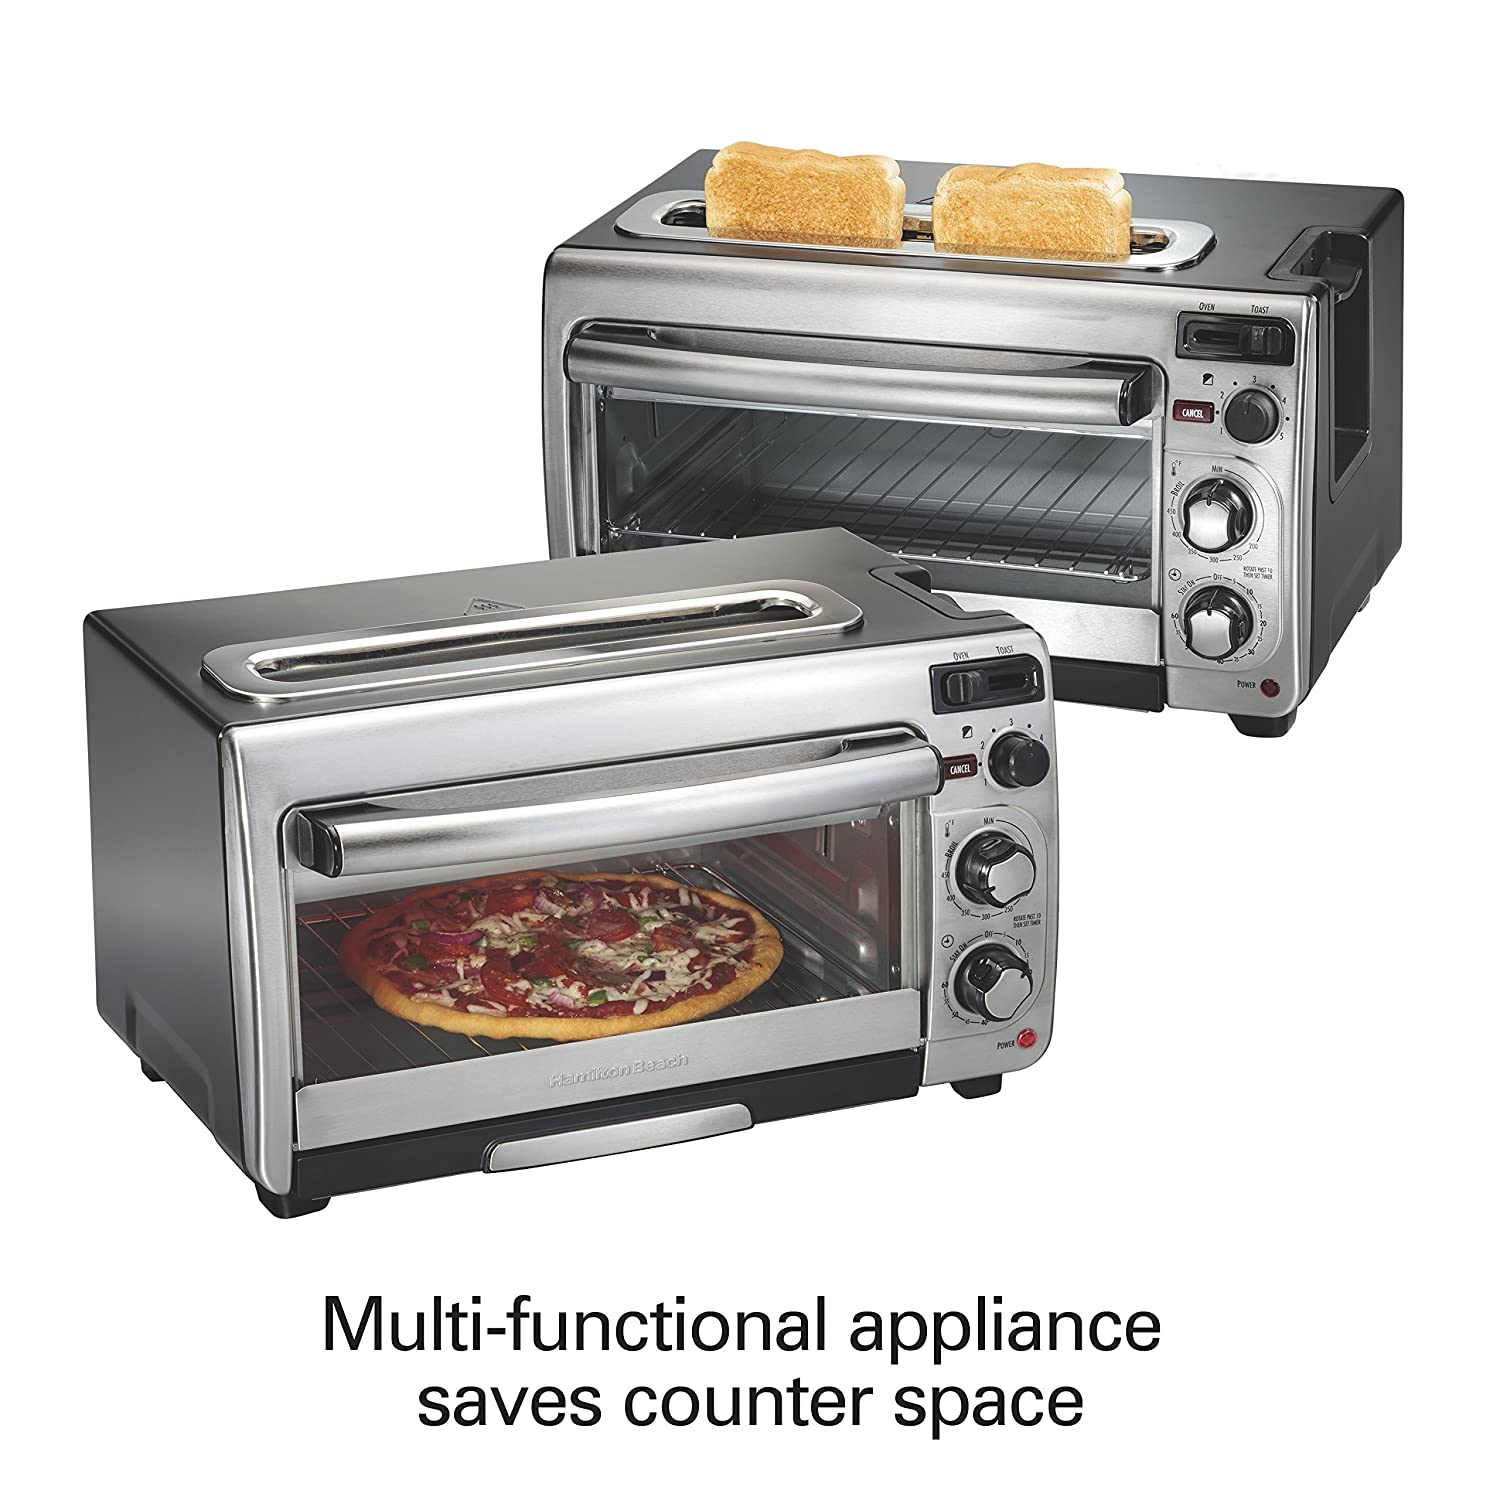 Oster Toaster Wiring Diagram Library Amazoncom Hamilton Beach 31156 Countertop Oven Stainless Steel Kitchen